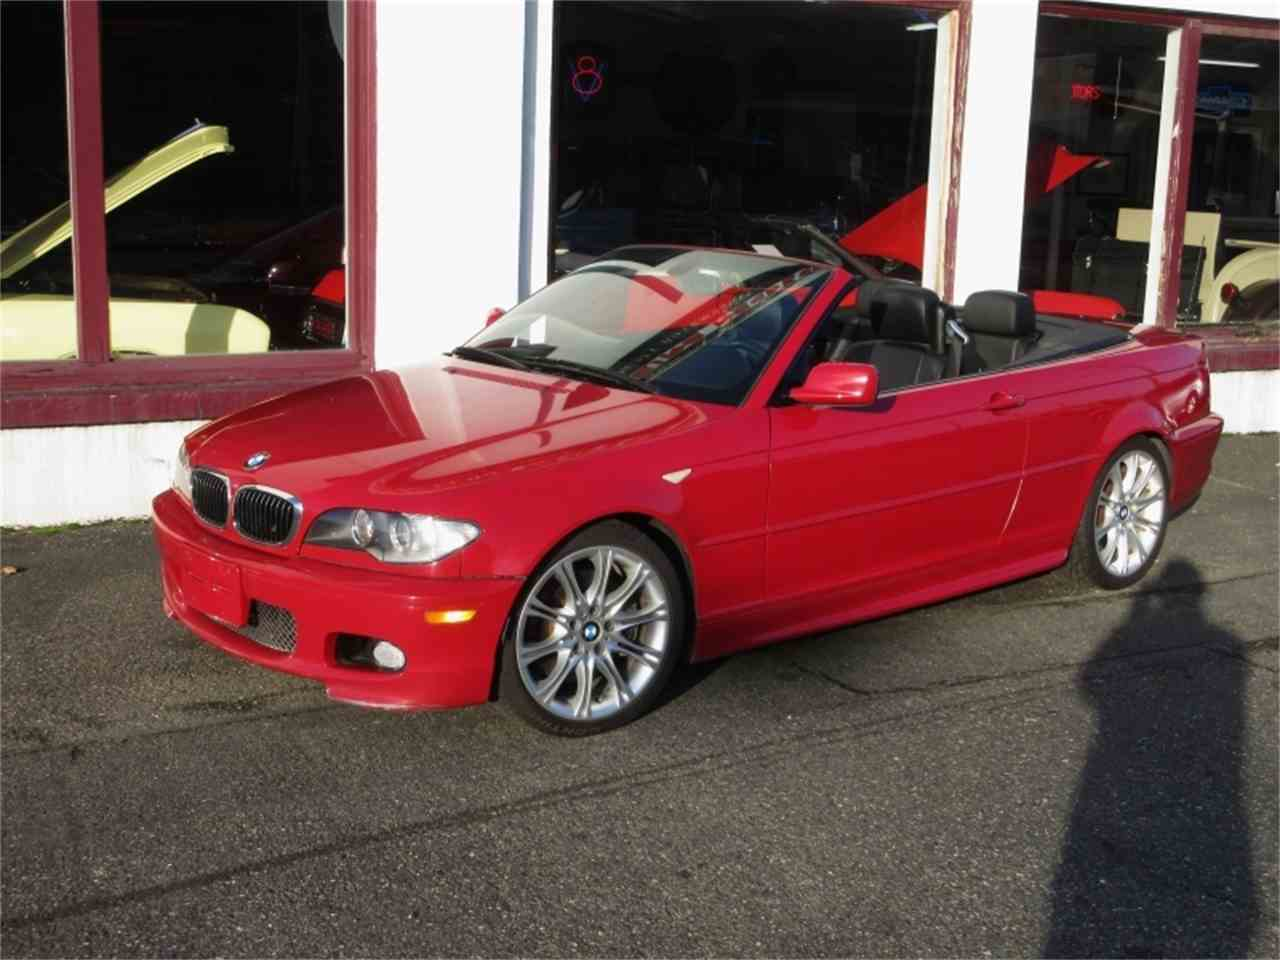 cabriolet singapore in forums bmw discussion car sgcarmart sg for threads used sale owners wts